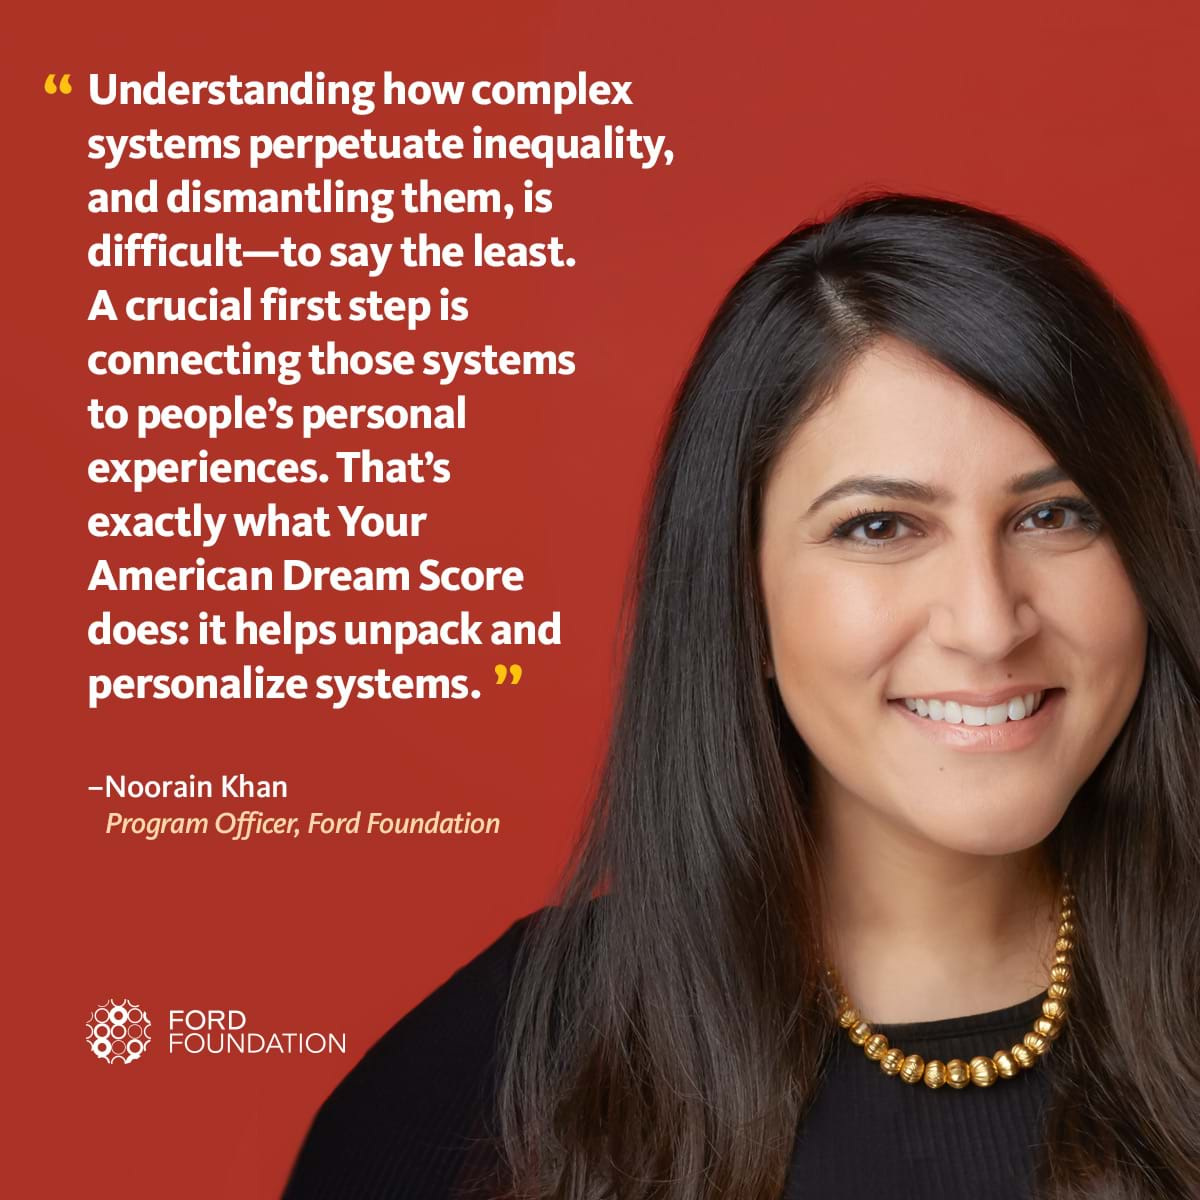 Photo of Noorain Kahn with a quote about her American Dream Score